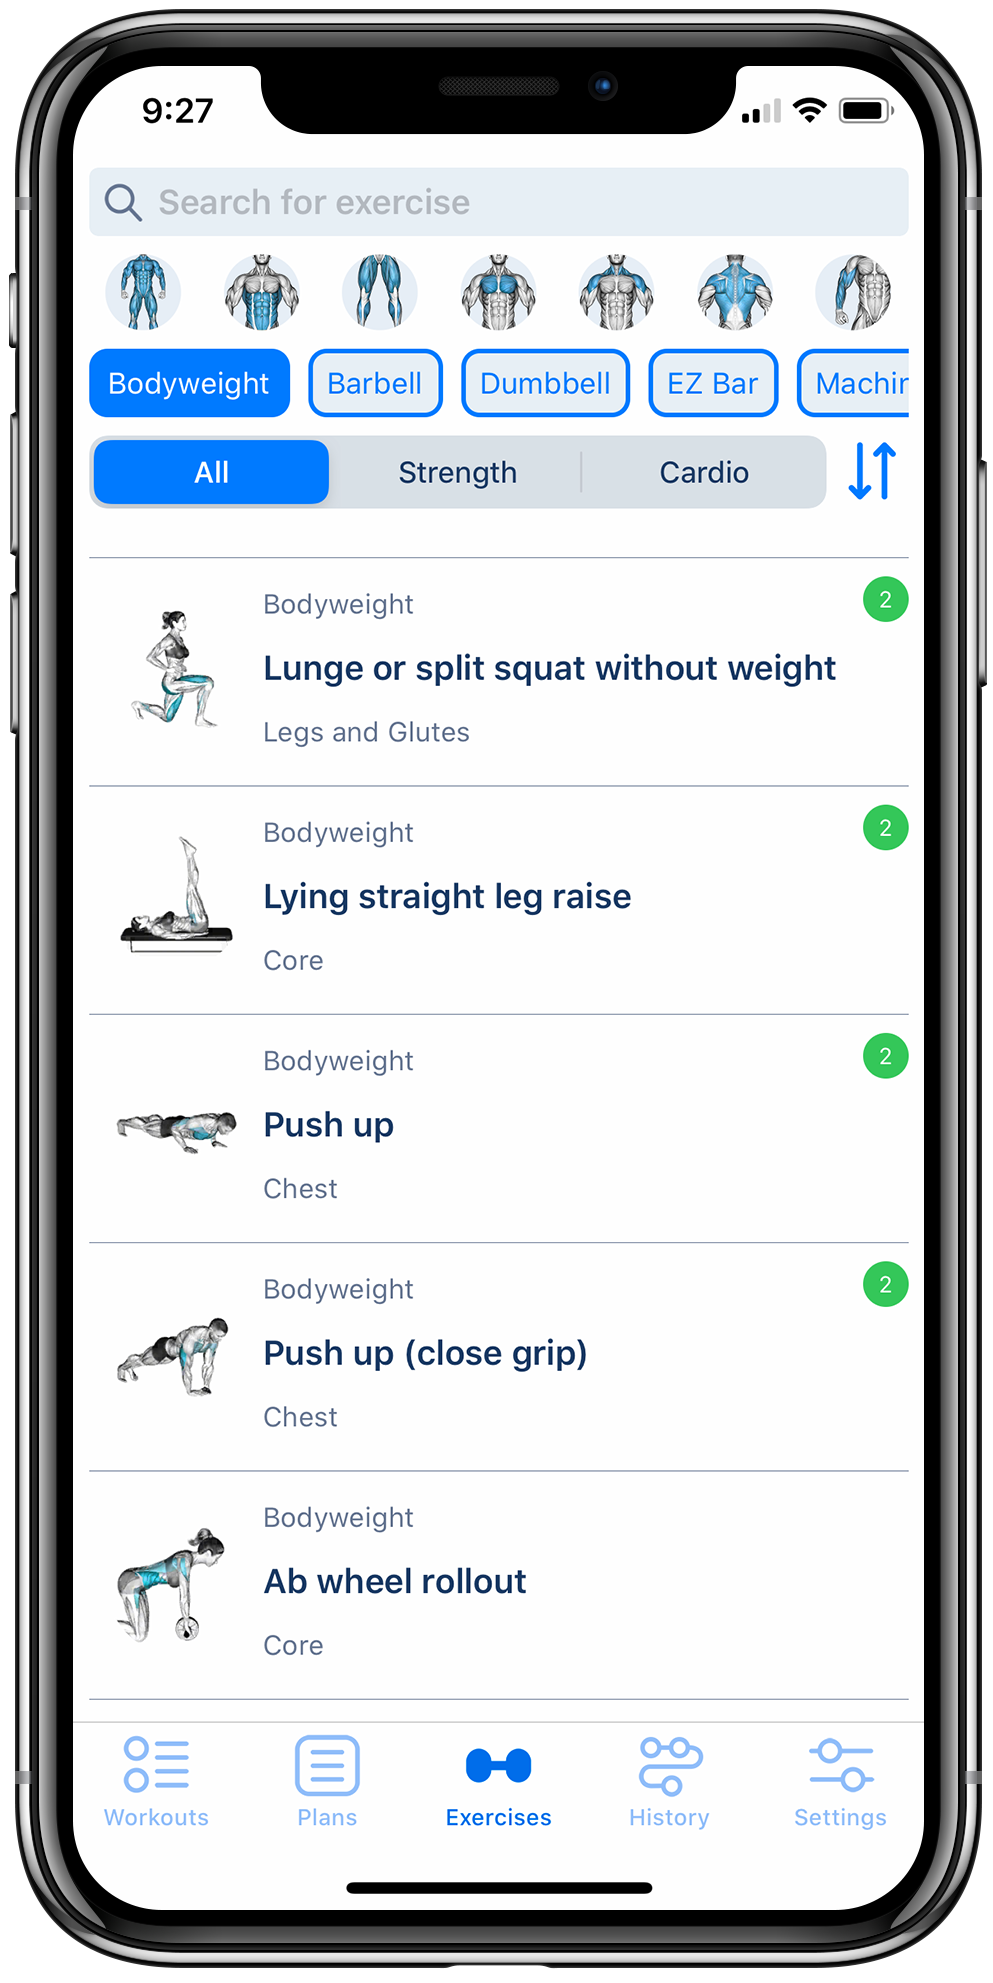 Workout tracker app on iPhone displaying a list of fitness exercises